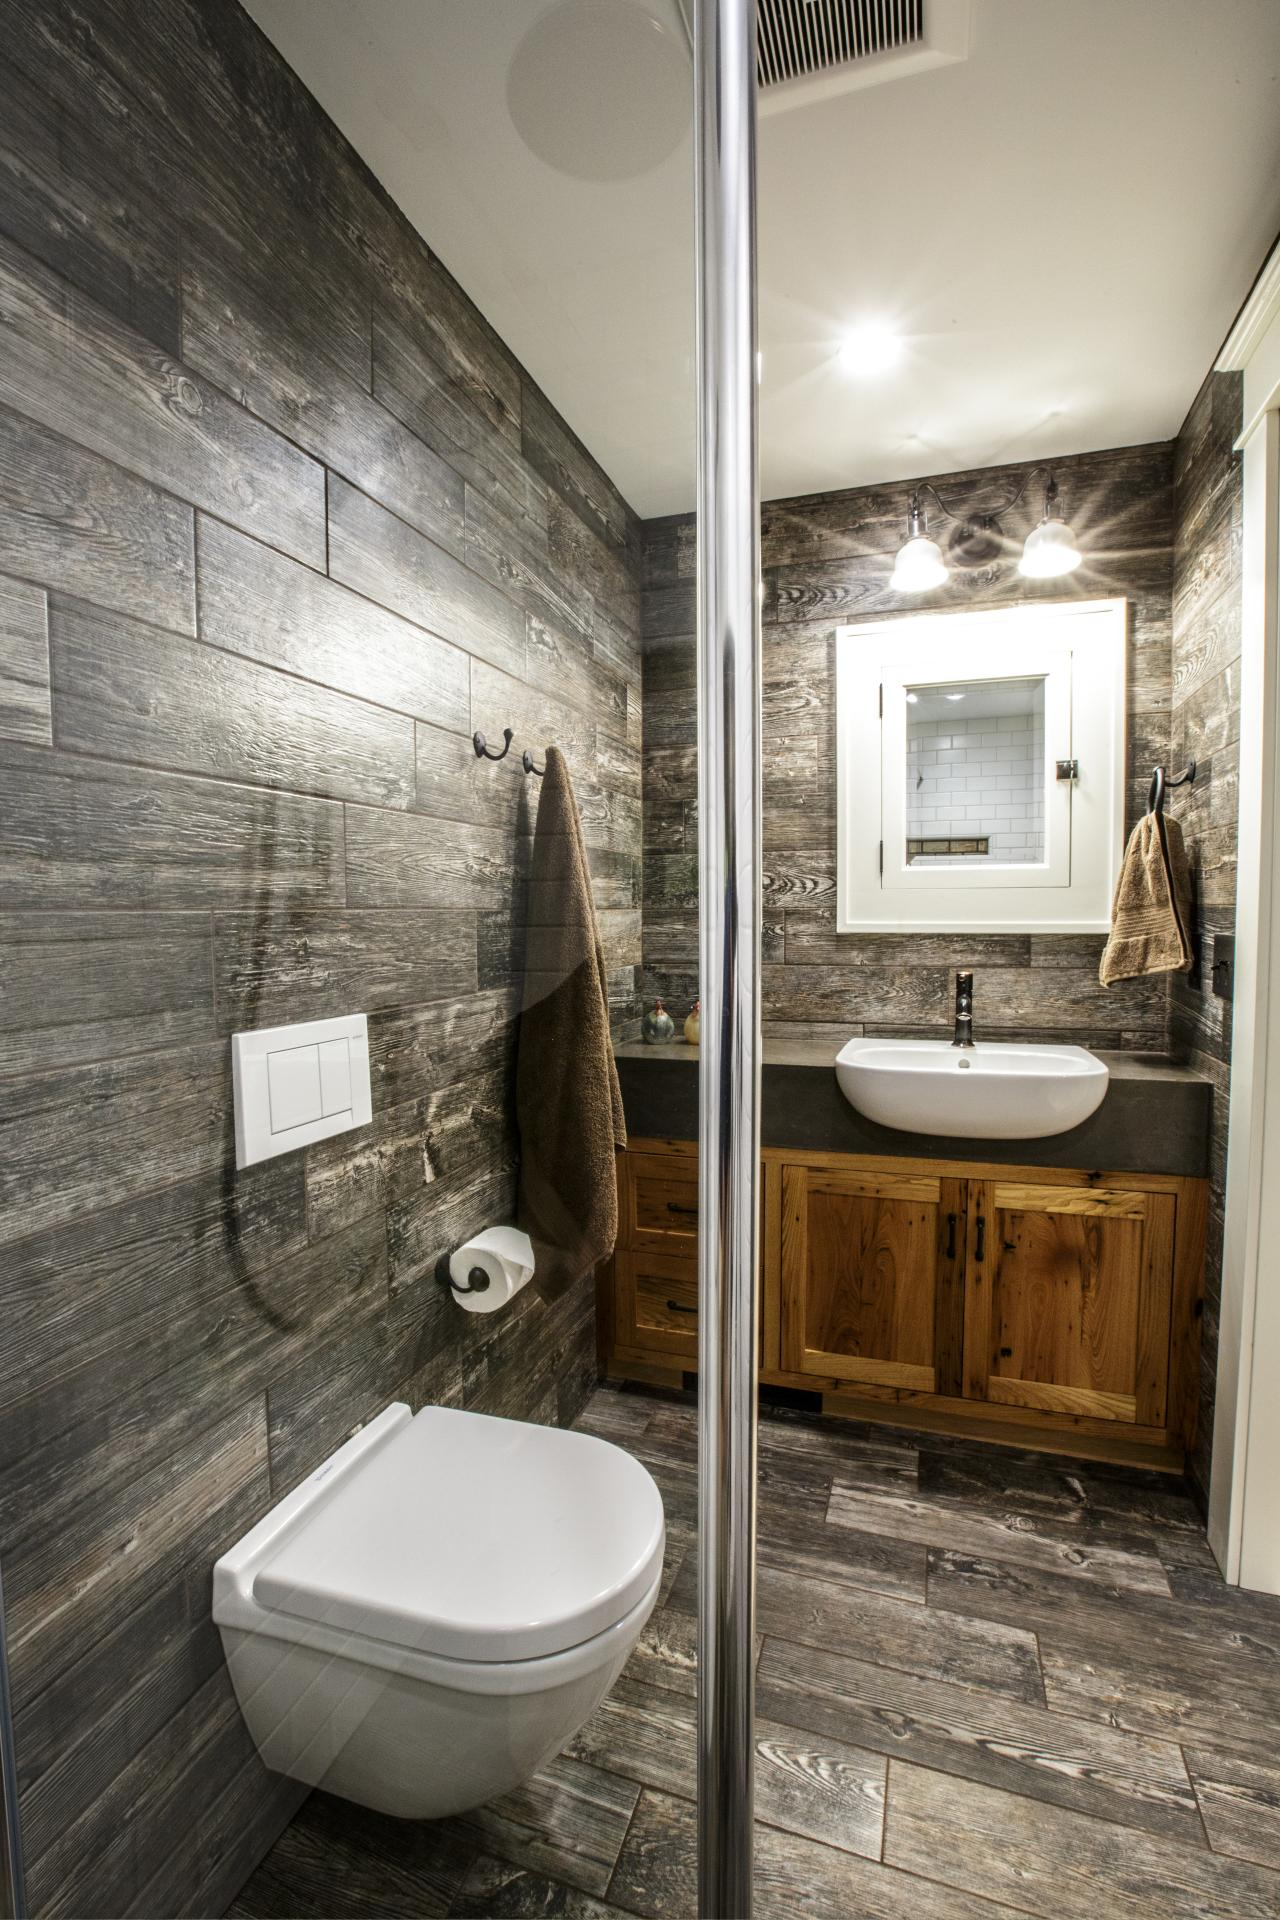 Rustic bathroom photos hgtv for Bathroom designs hgtv